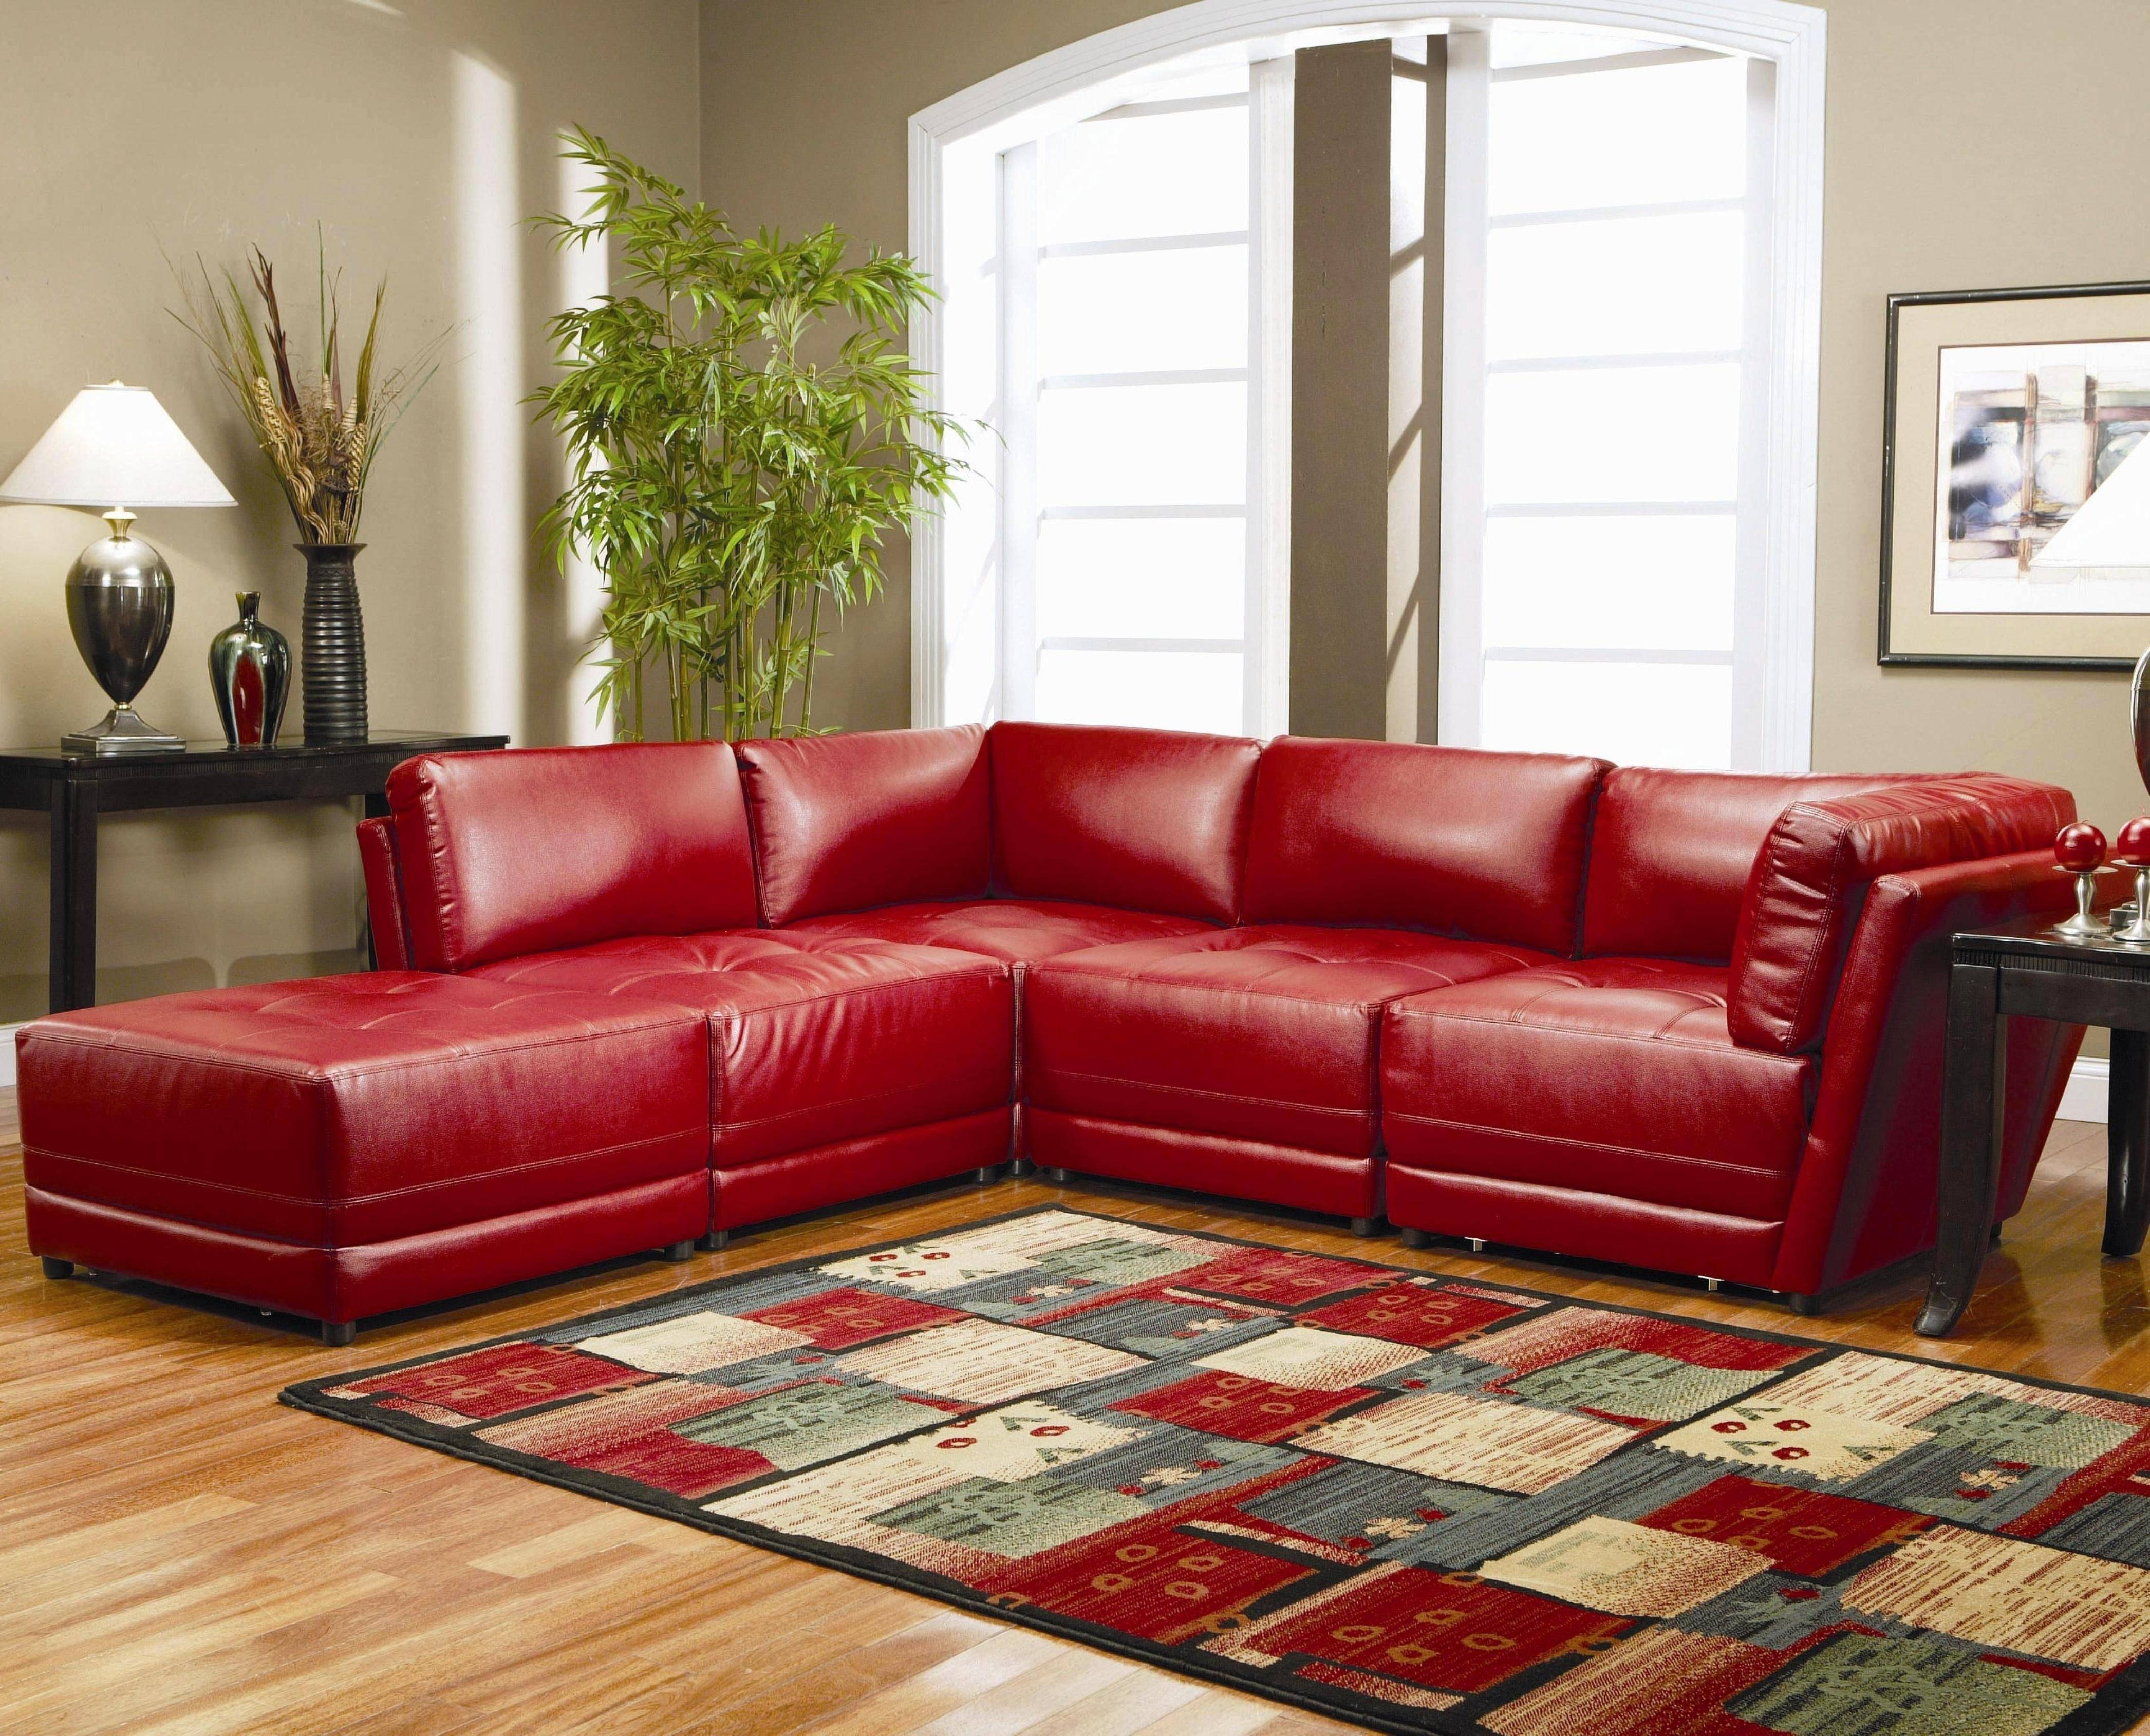 Sectional Sofas For Apartments - Cleanupflorida | Tehranmix within Craftsman Sectional Sofa (Image 27 of 30)